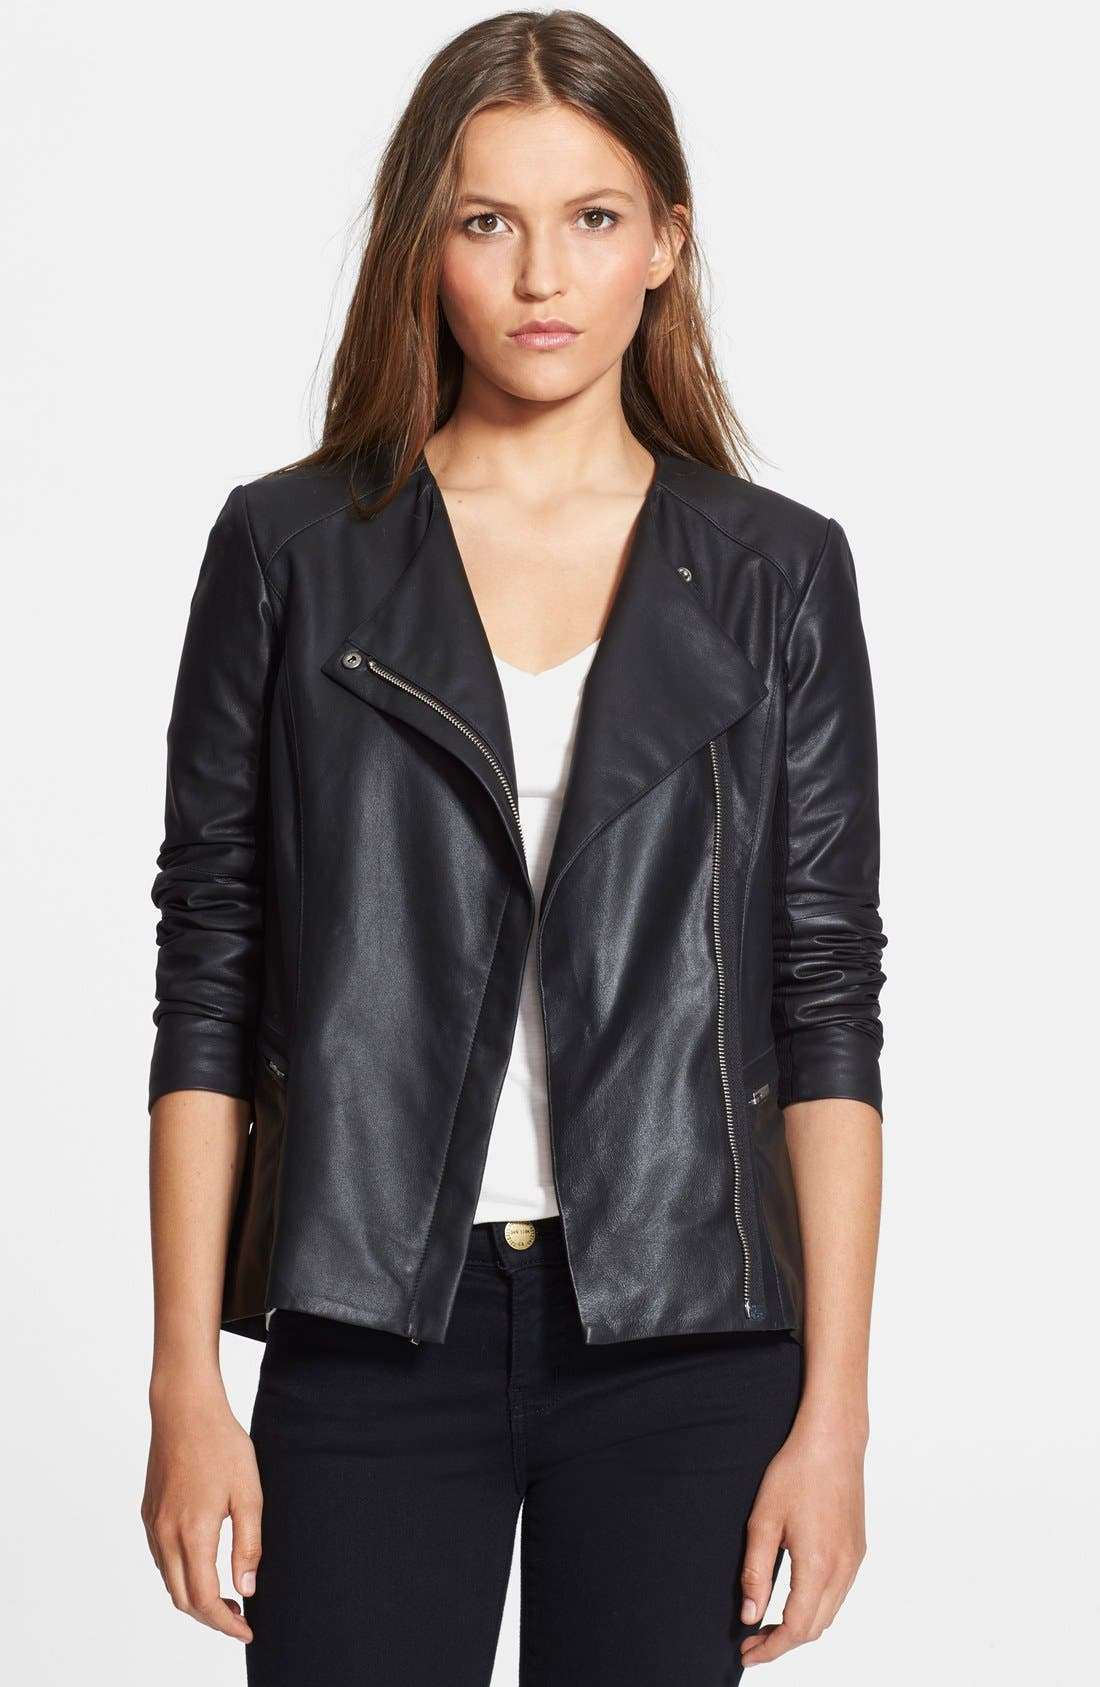 VEDA, 'Aires' Asymmetrical Zip Leather Jacket, Main thumbnail 1, color, 001